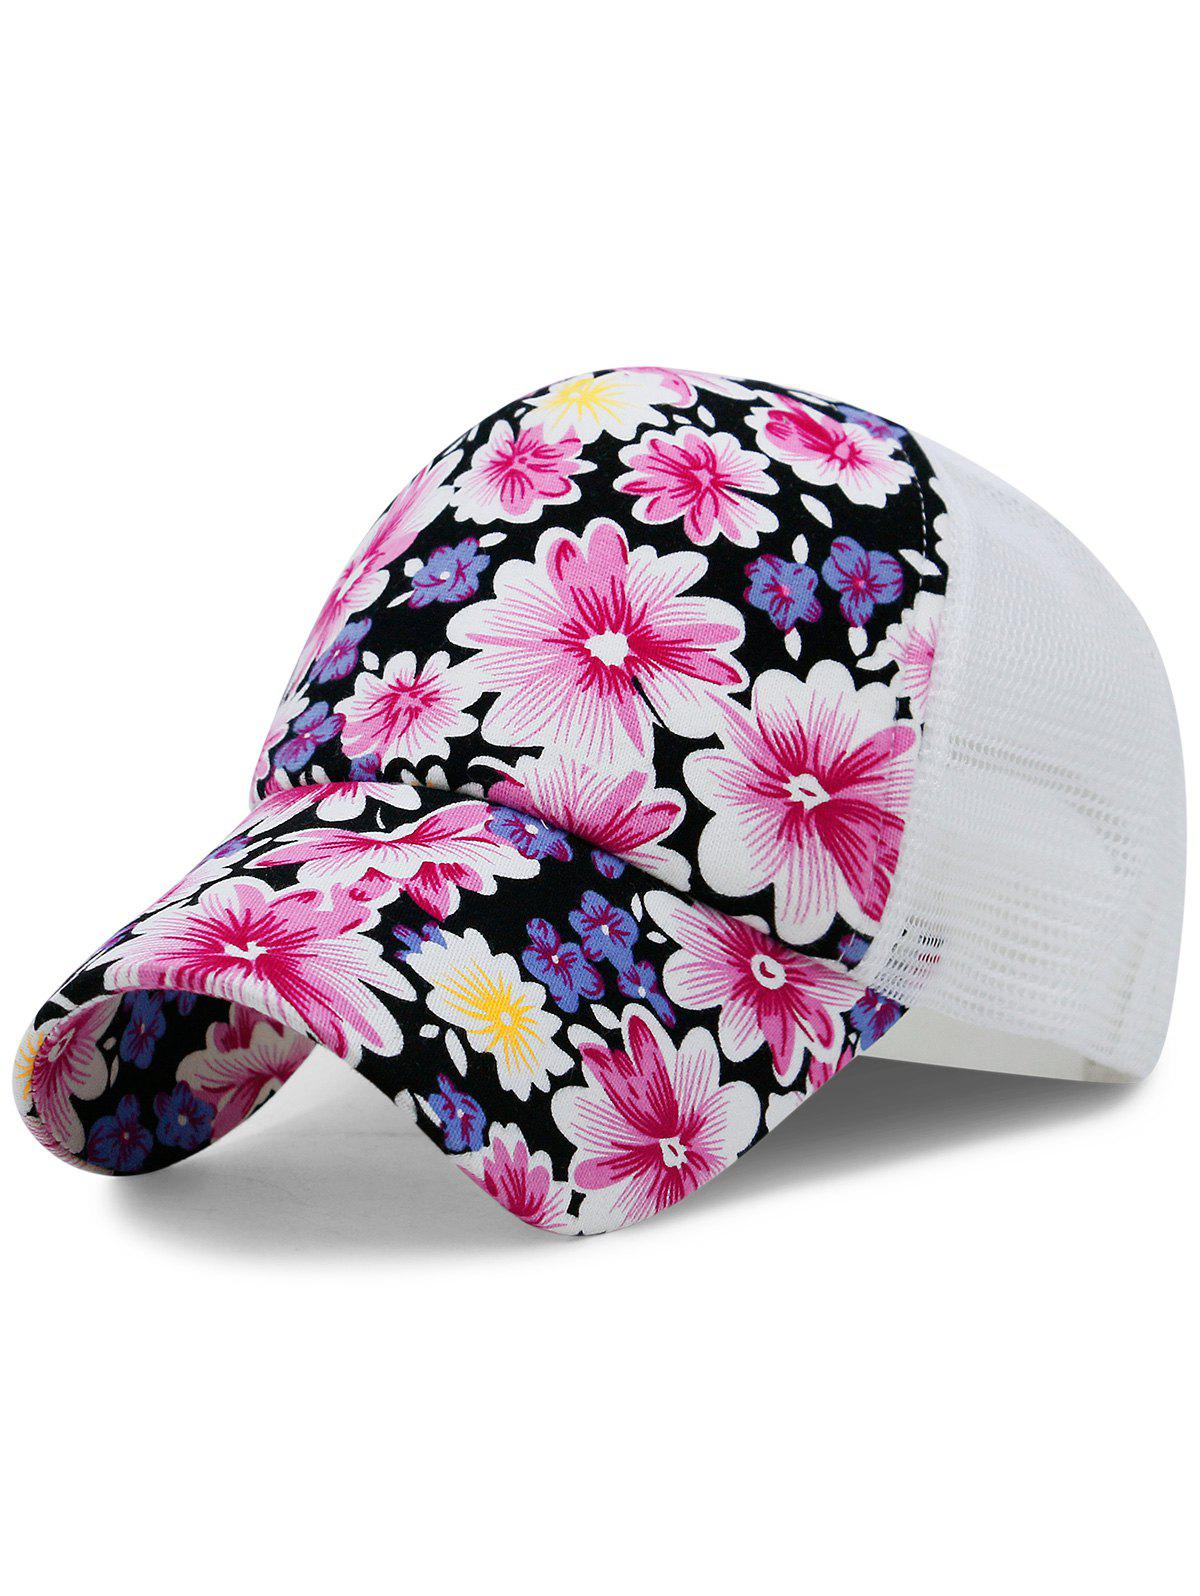 Store Chrysanthemum Pattern Decorative Mesh Baseball Cap